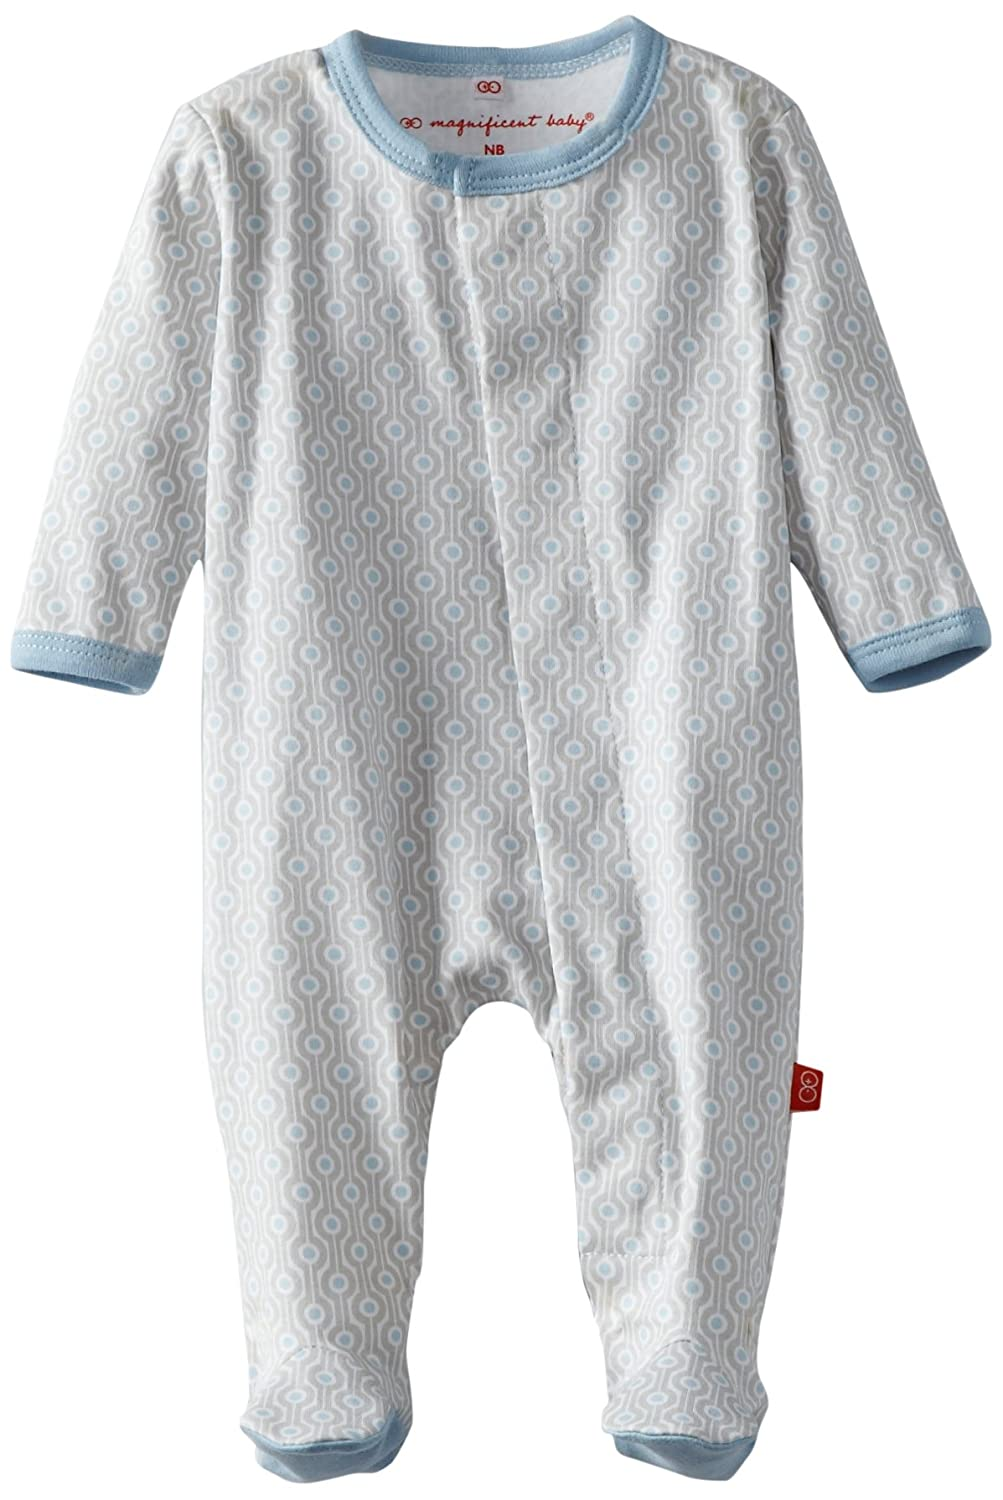 Magnificent Baby Magnetic Baby Boys Cotton Footie